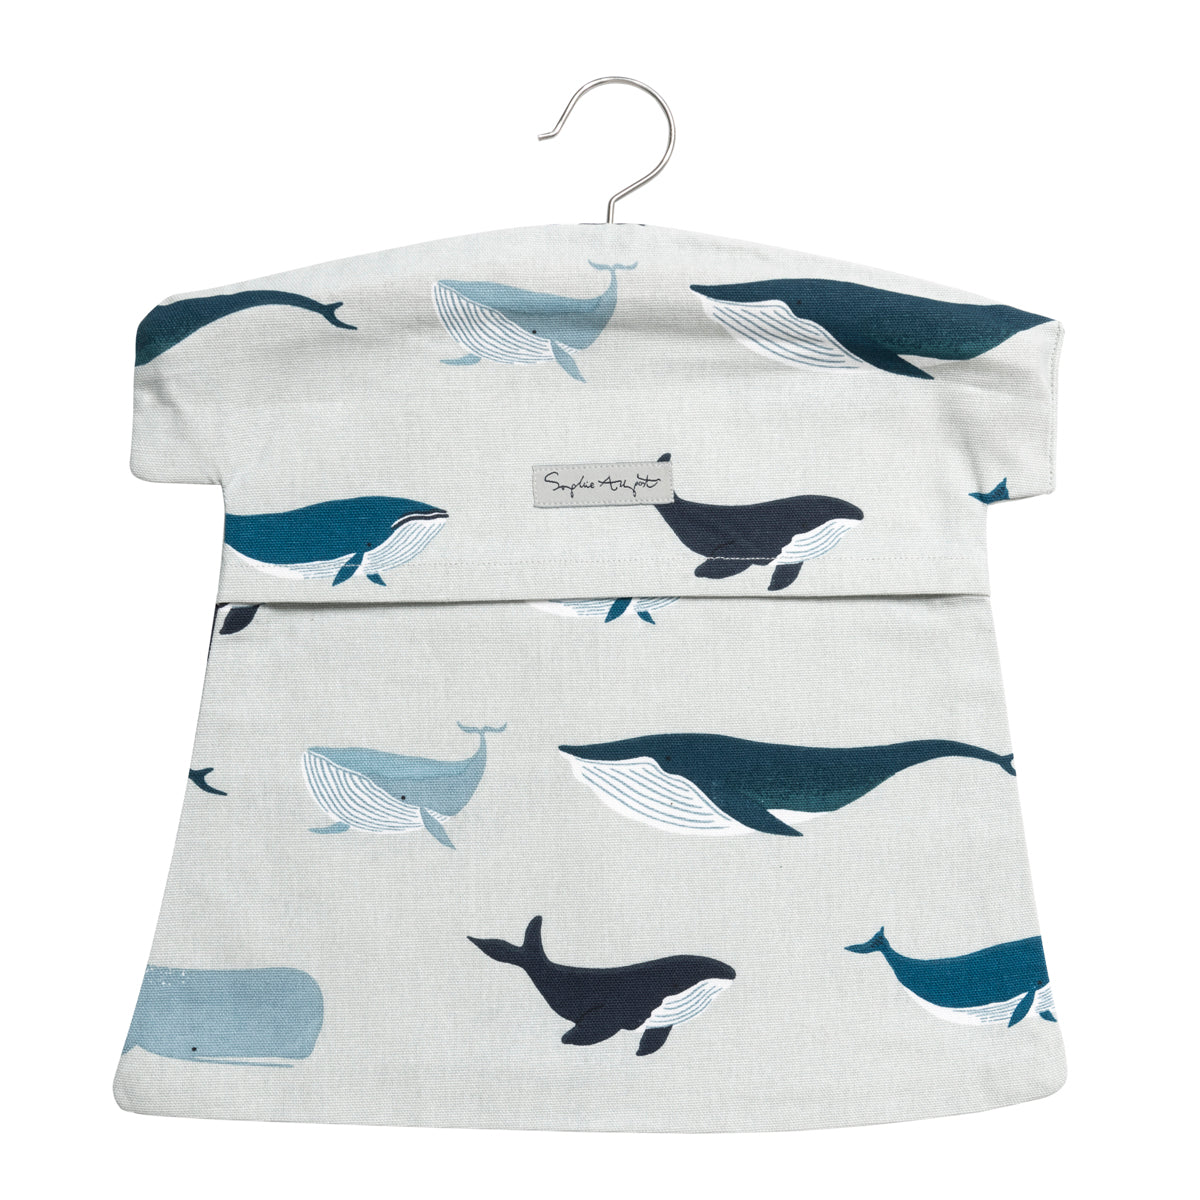 Whales Summer Cotton Peg Bag by Sophie Allport